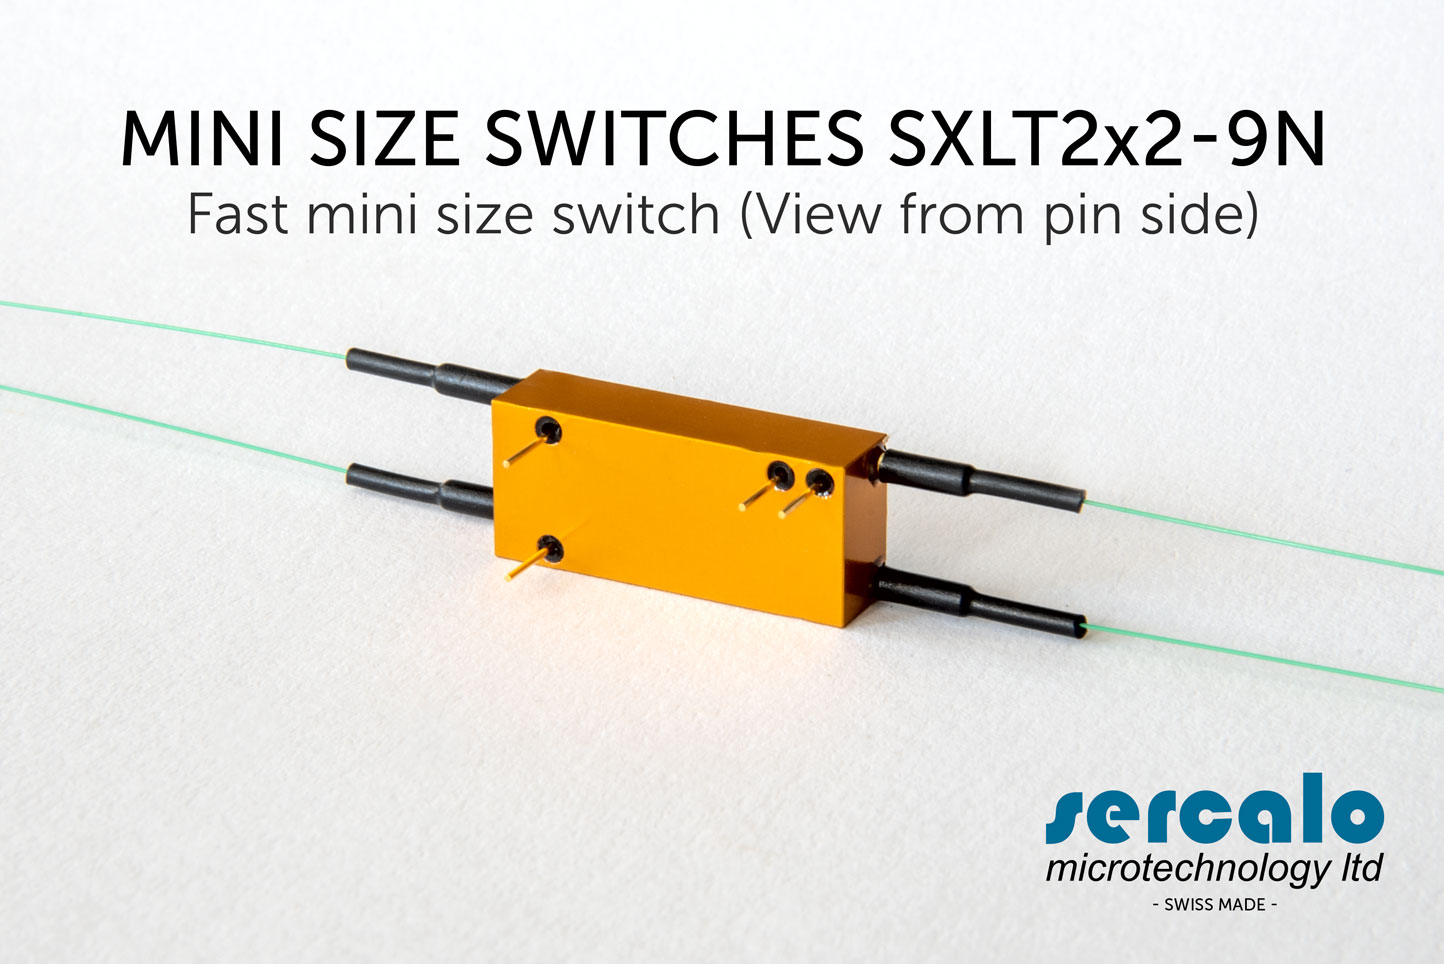 SERCALO MINI SIZES SWITCHES SXLT